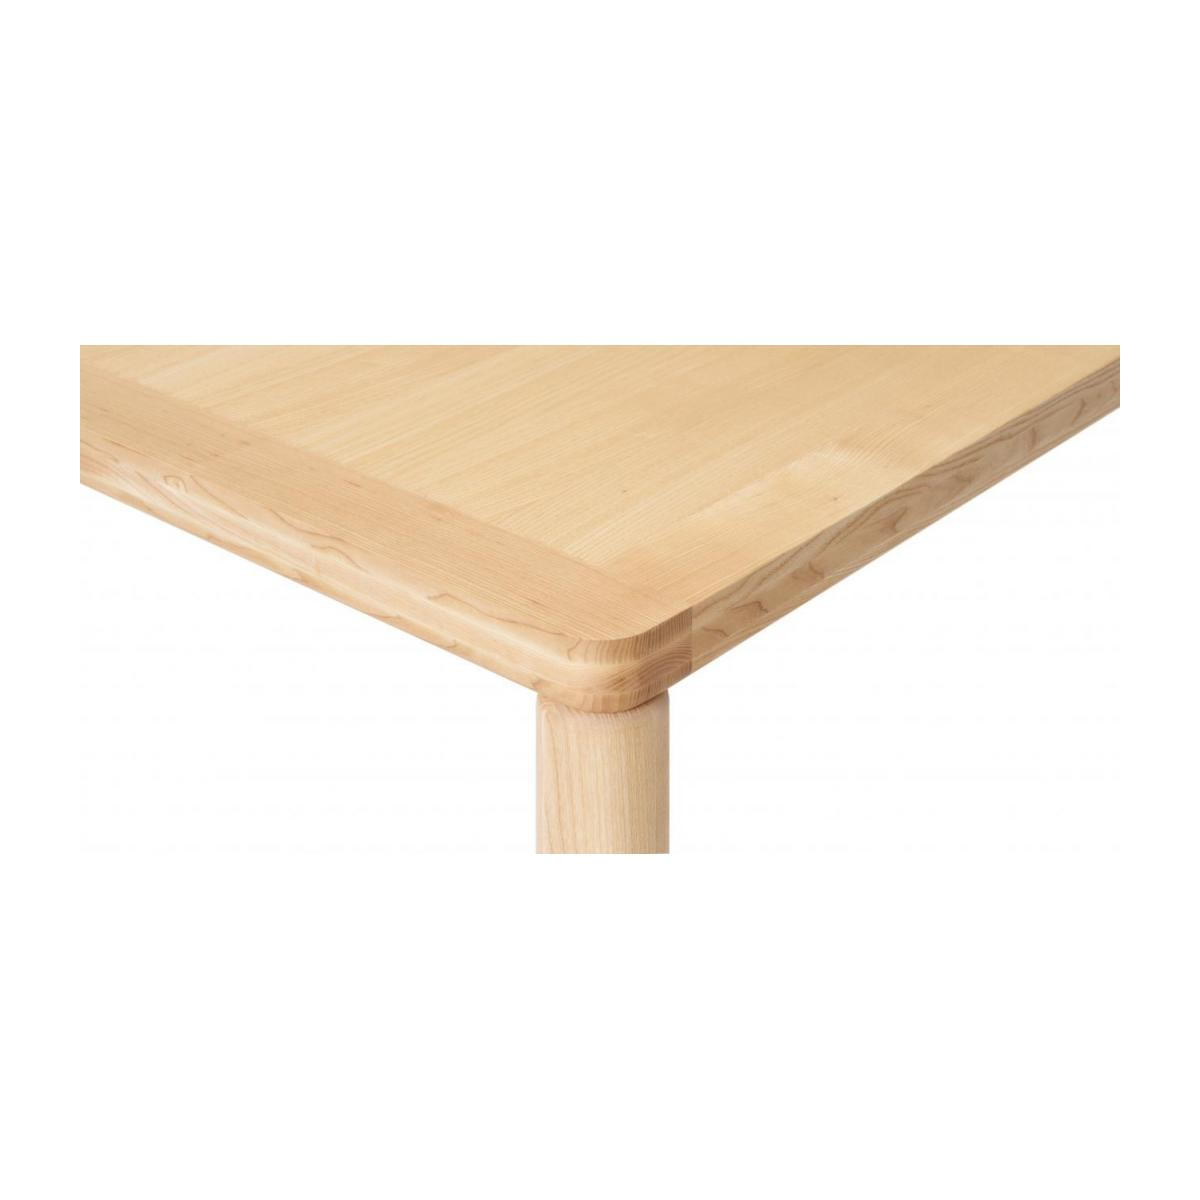 Table in clear ash wood n°4